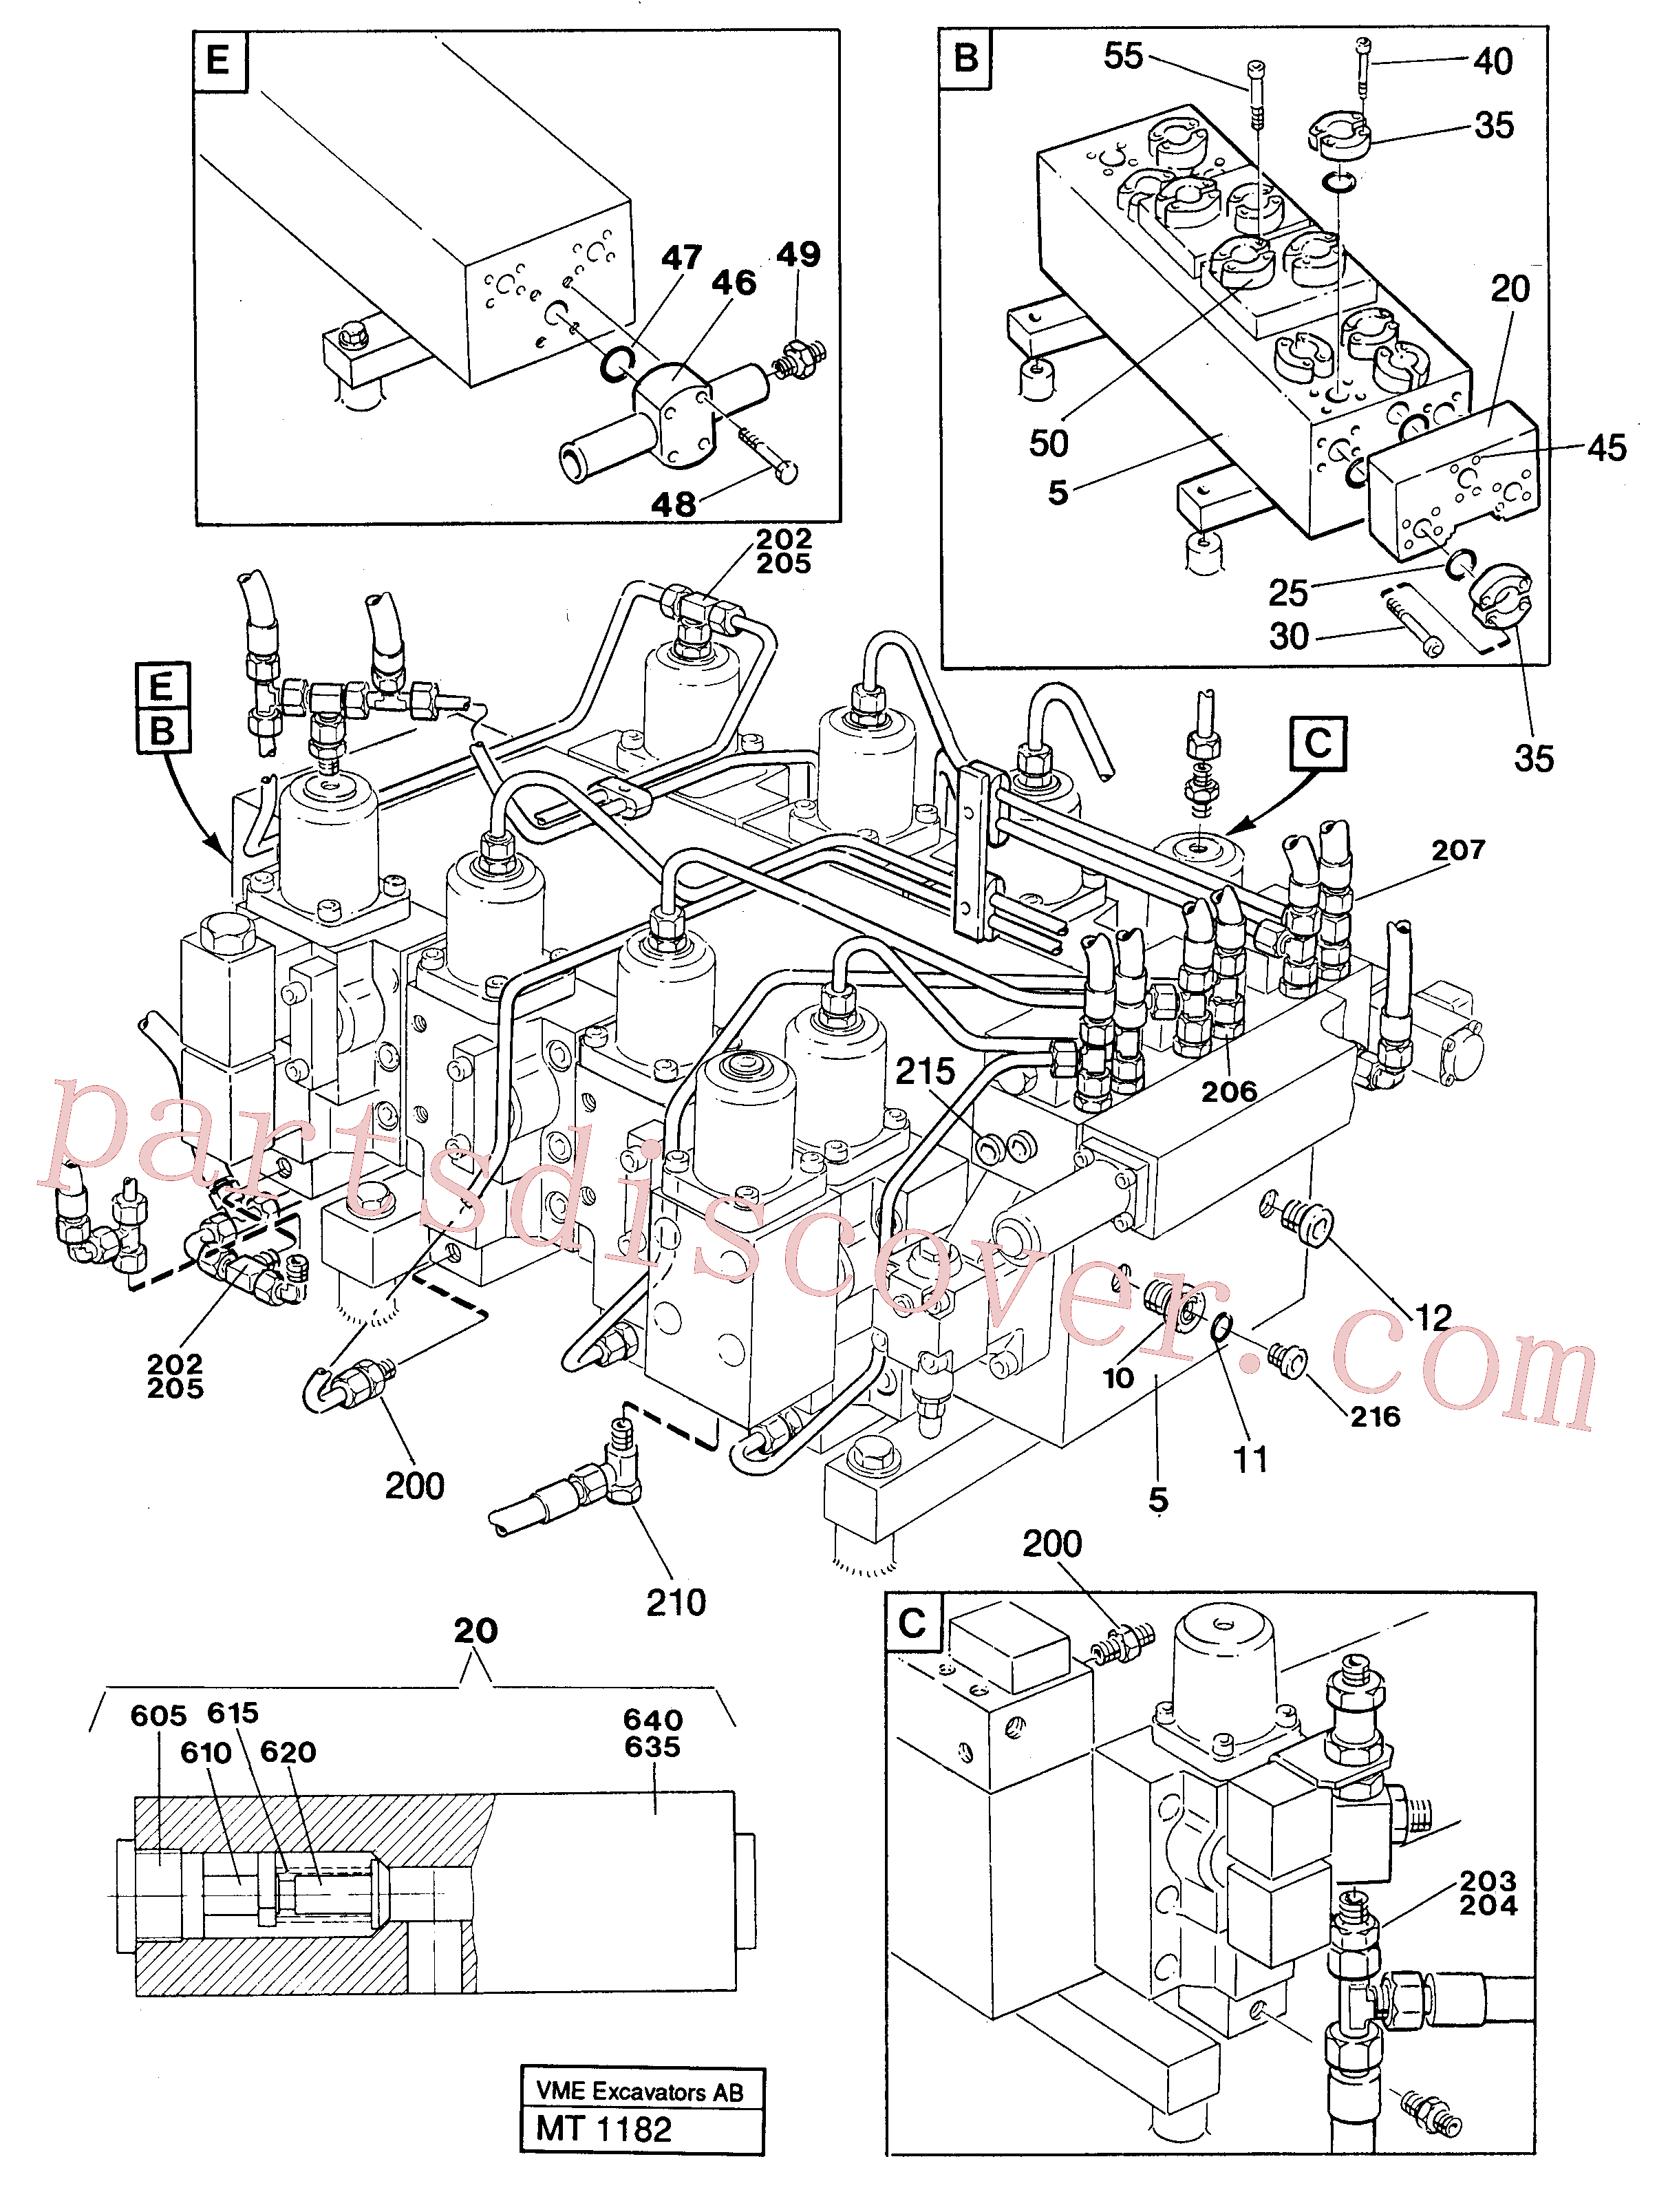 VOE14048189 for Volvo Main valve assembly with connections(MT1182 assembly)